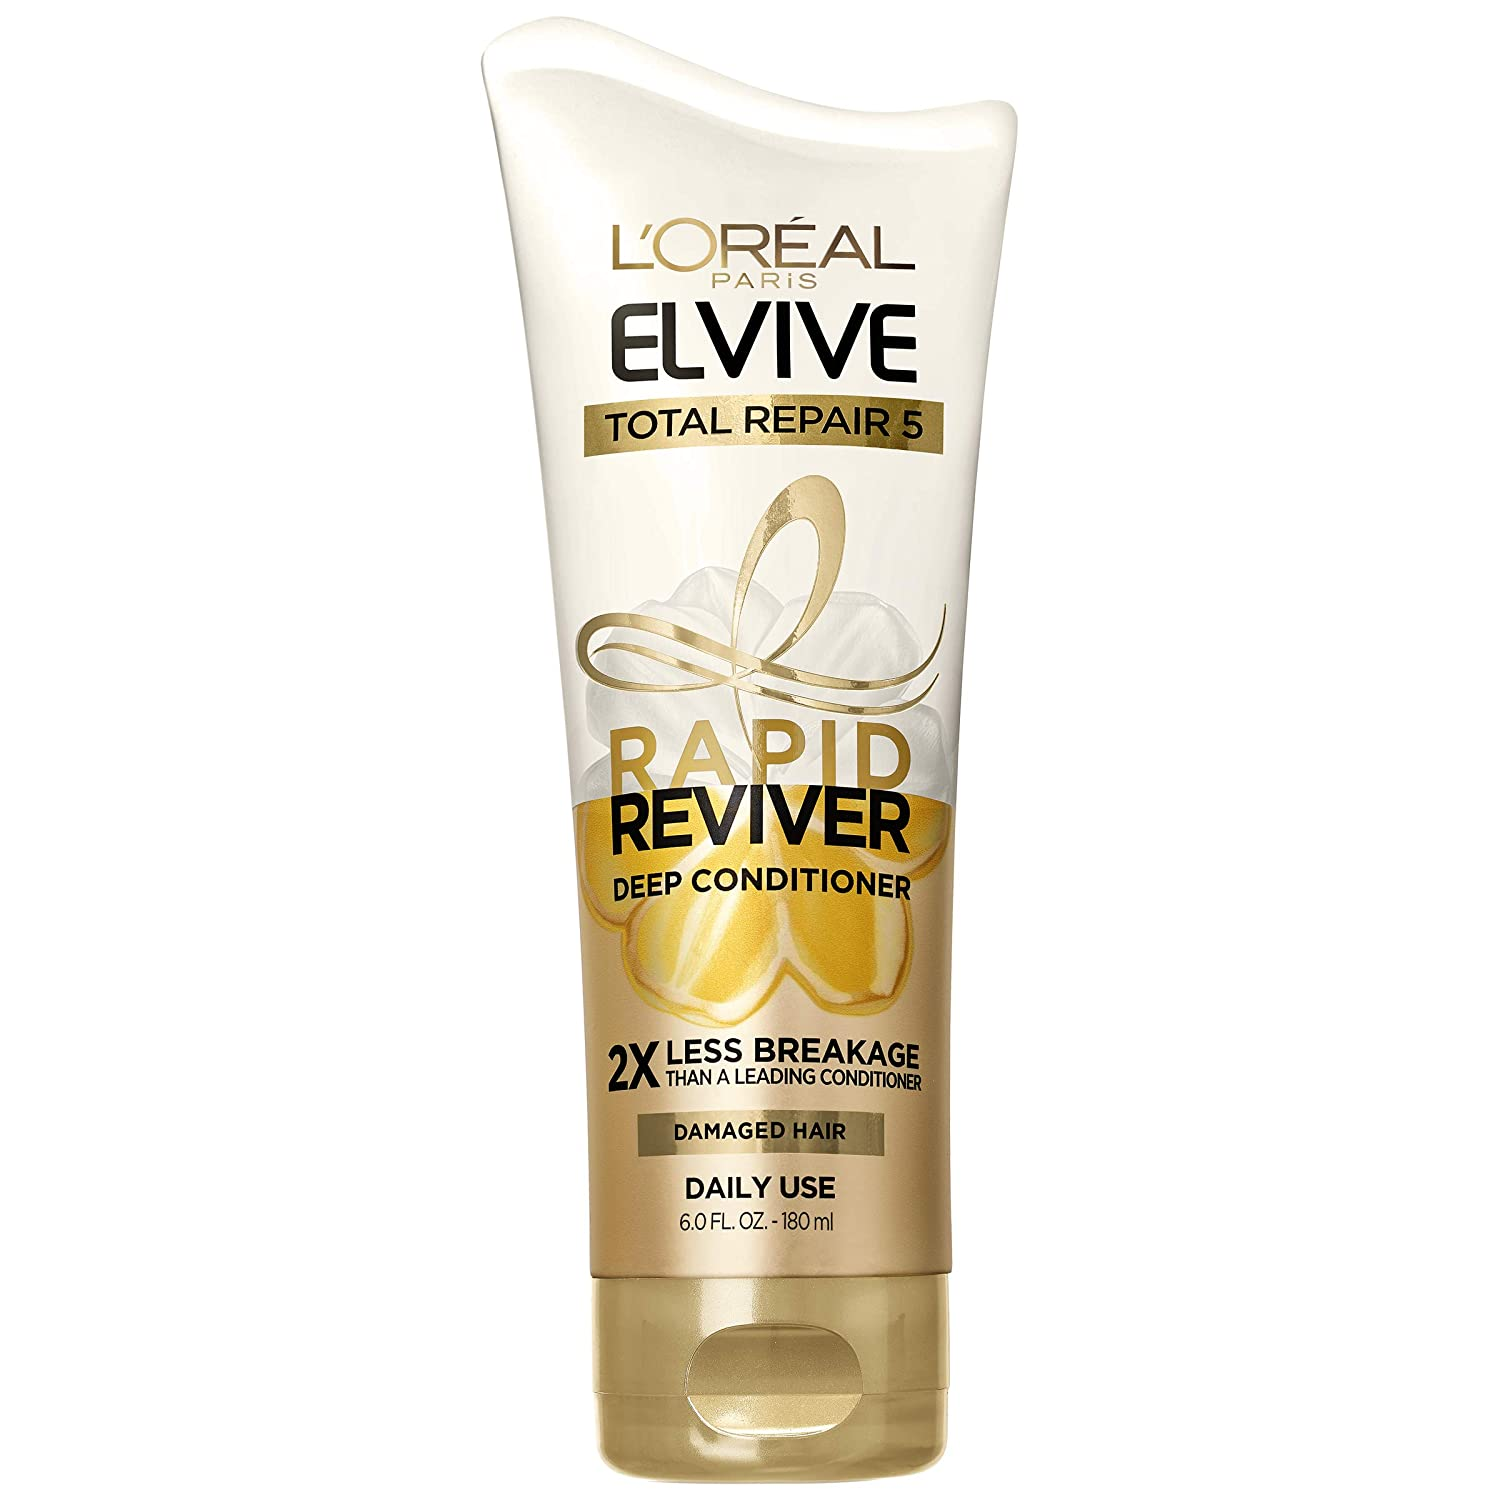 L'Oreal Paris Elvive Total Repair 5 Rapid Reviver Deep Conditioner, Repairs Damaged Hair, No Leave-In Time, Heat Protectant, with Damage Repairing Serum and Protein, 6 oz.